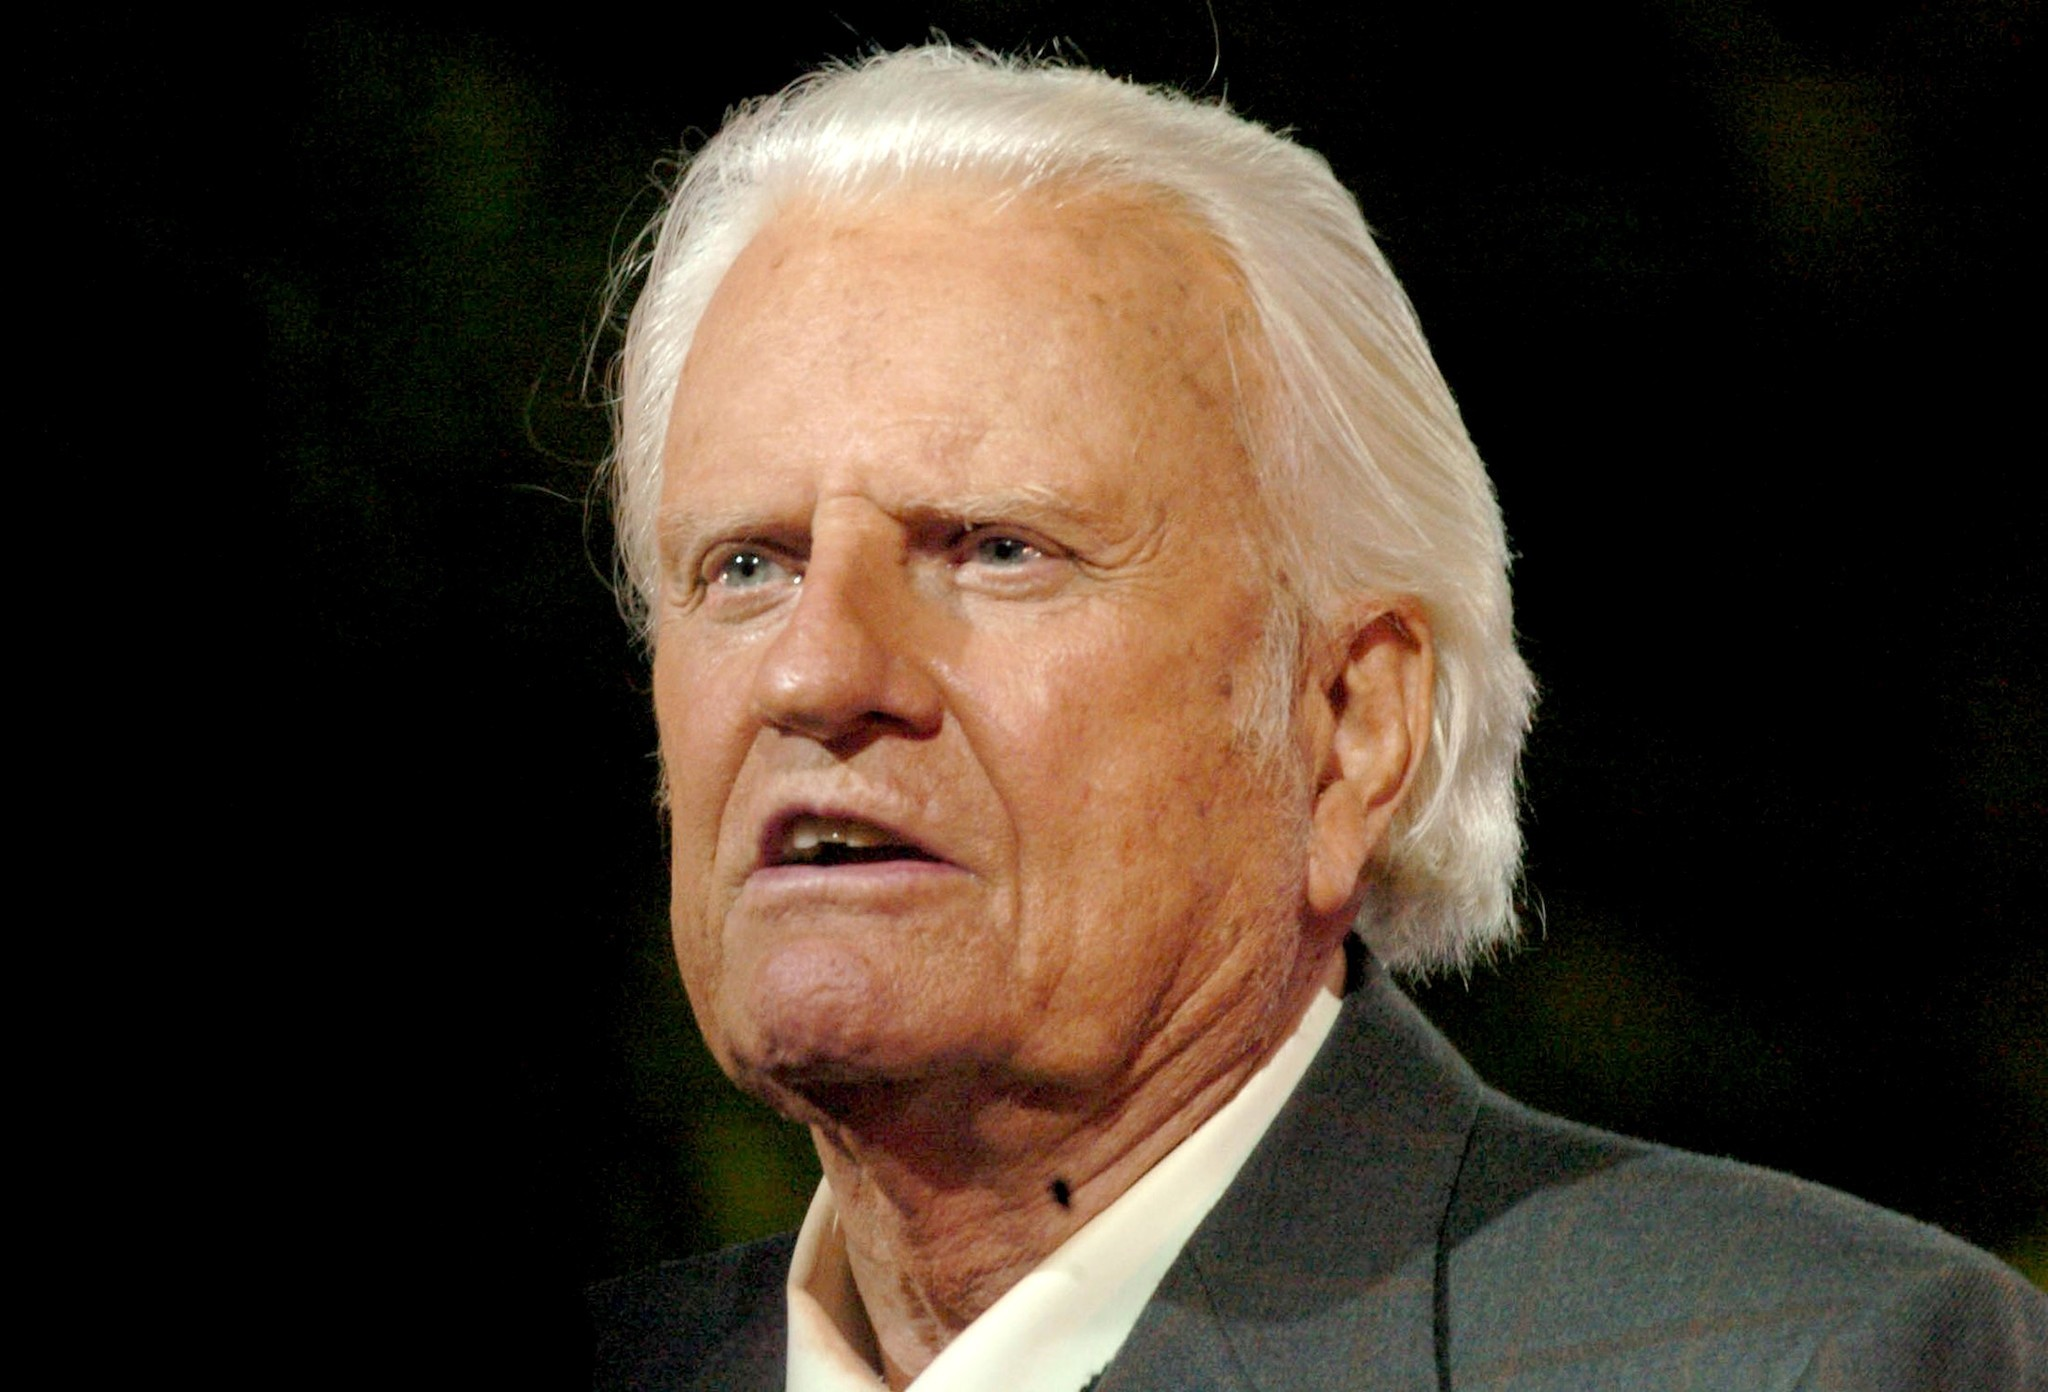 Billy graham death date in Melbourne